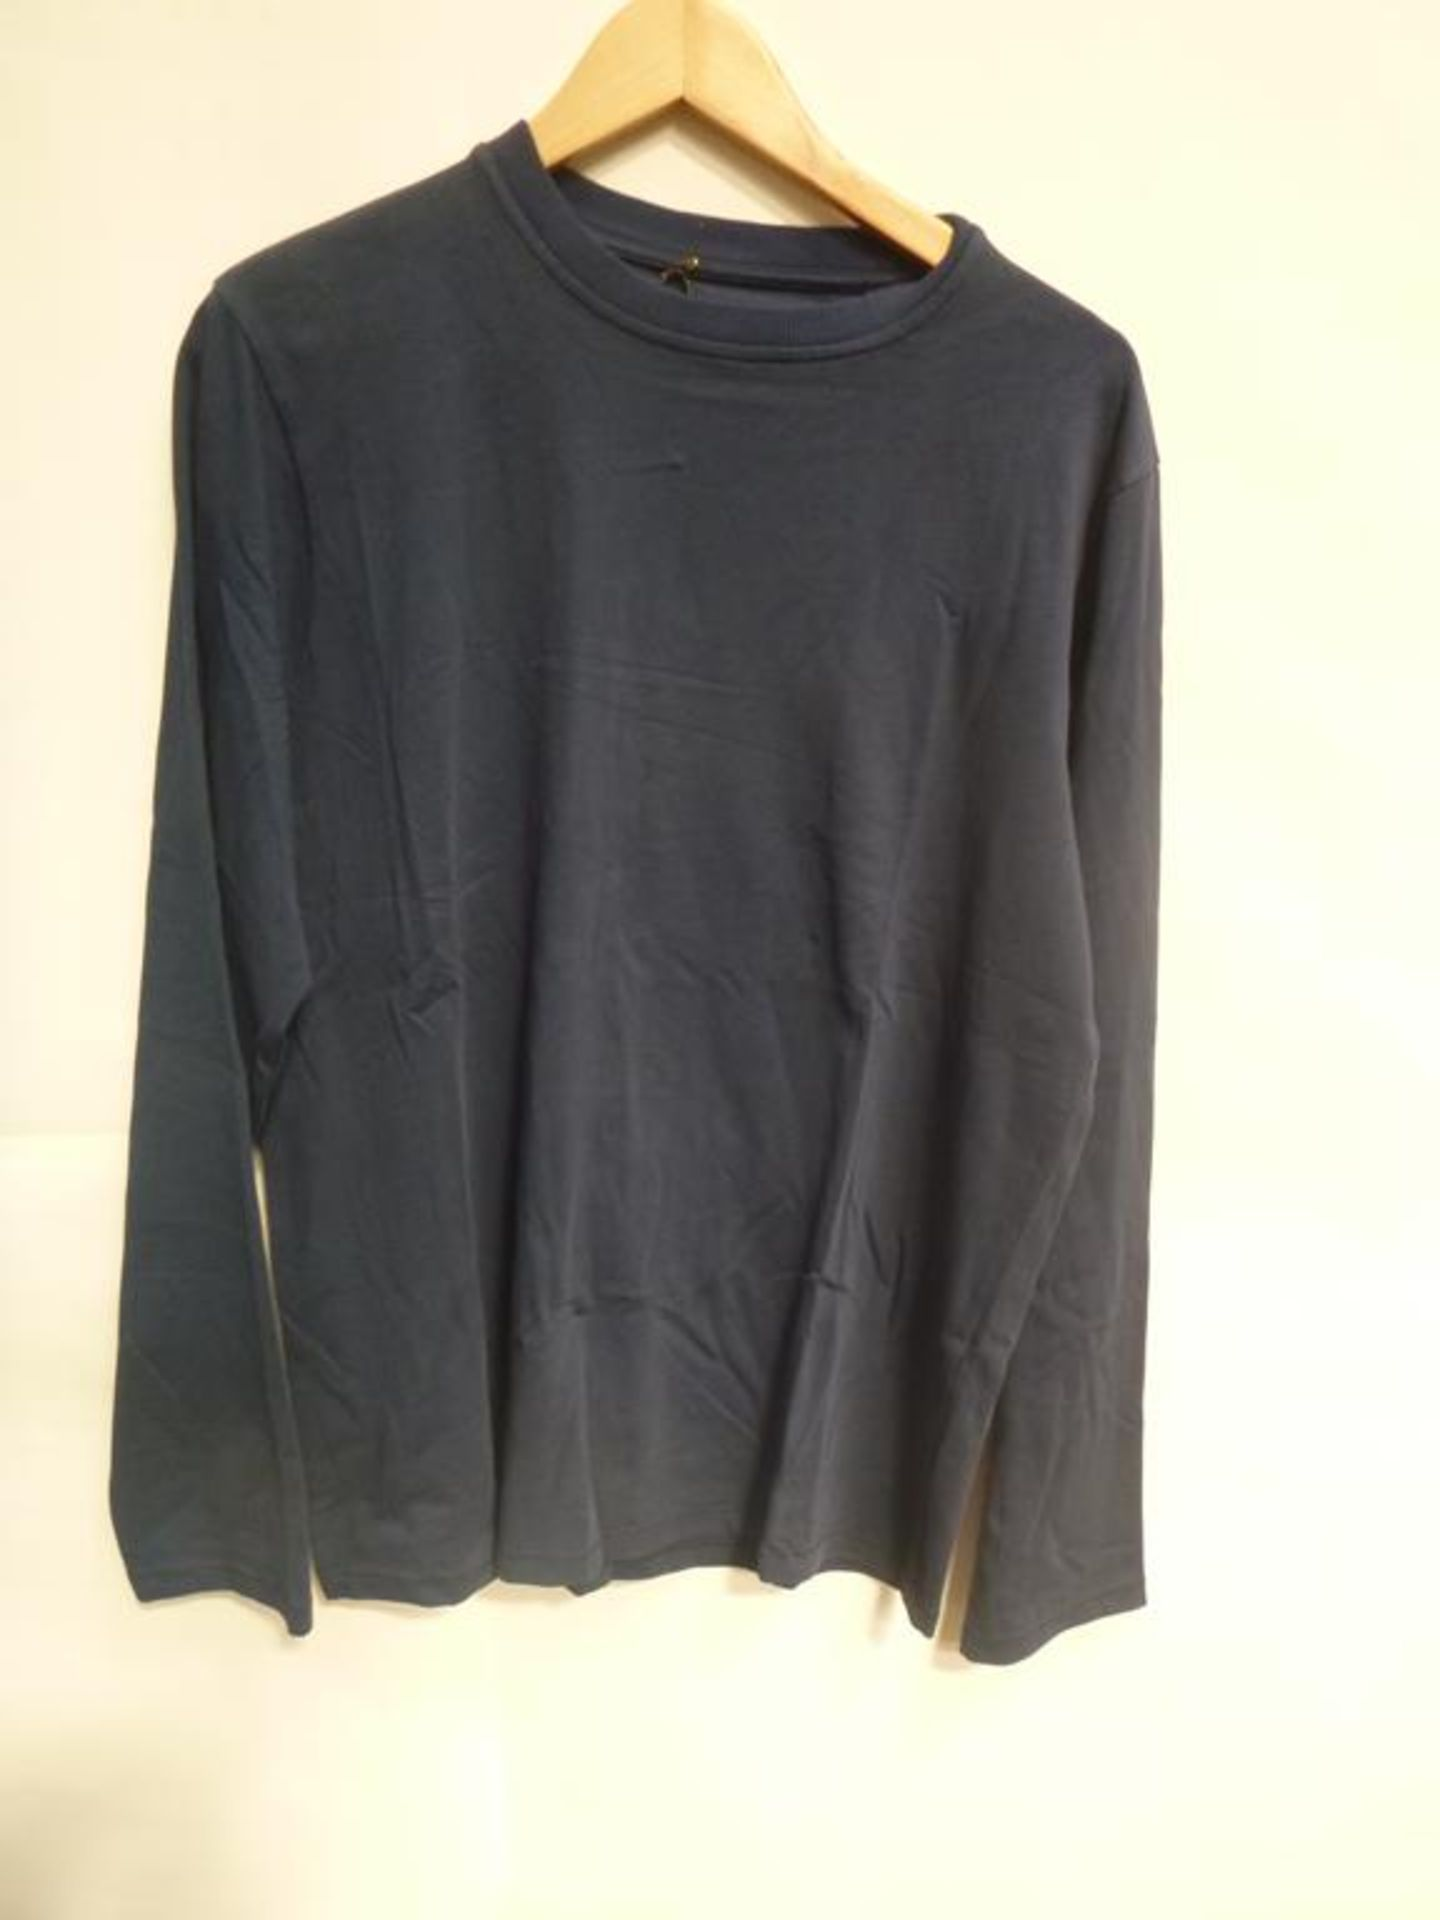 Lot 720 - Three Navy Short Sleeve T-Shirts (2 XS, S), Two Navy Long Sleeve T-Shirts (XS, M), Celia Crew Linen